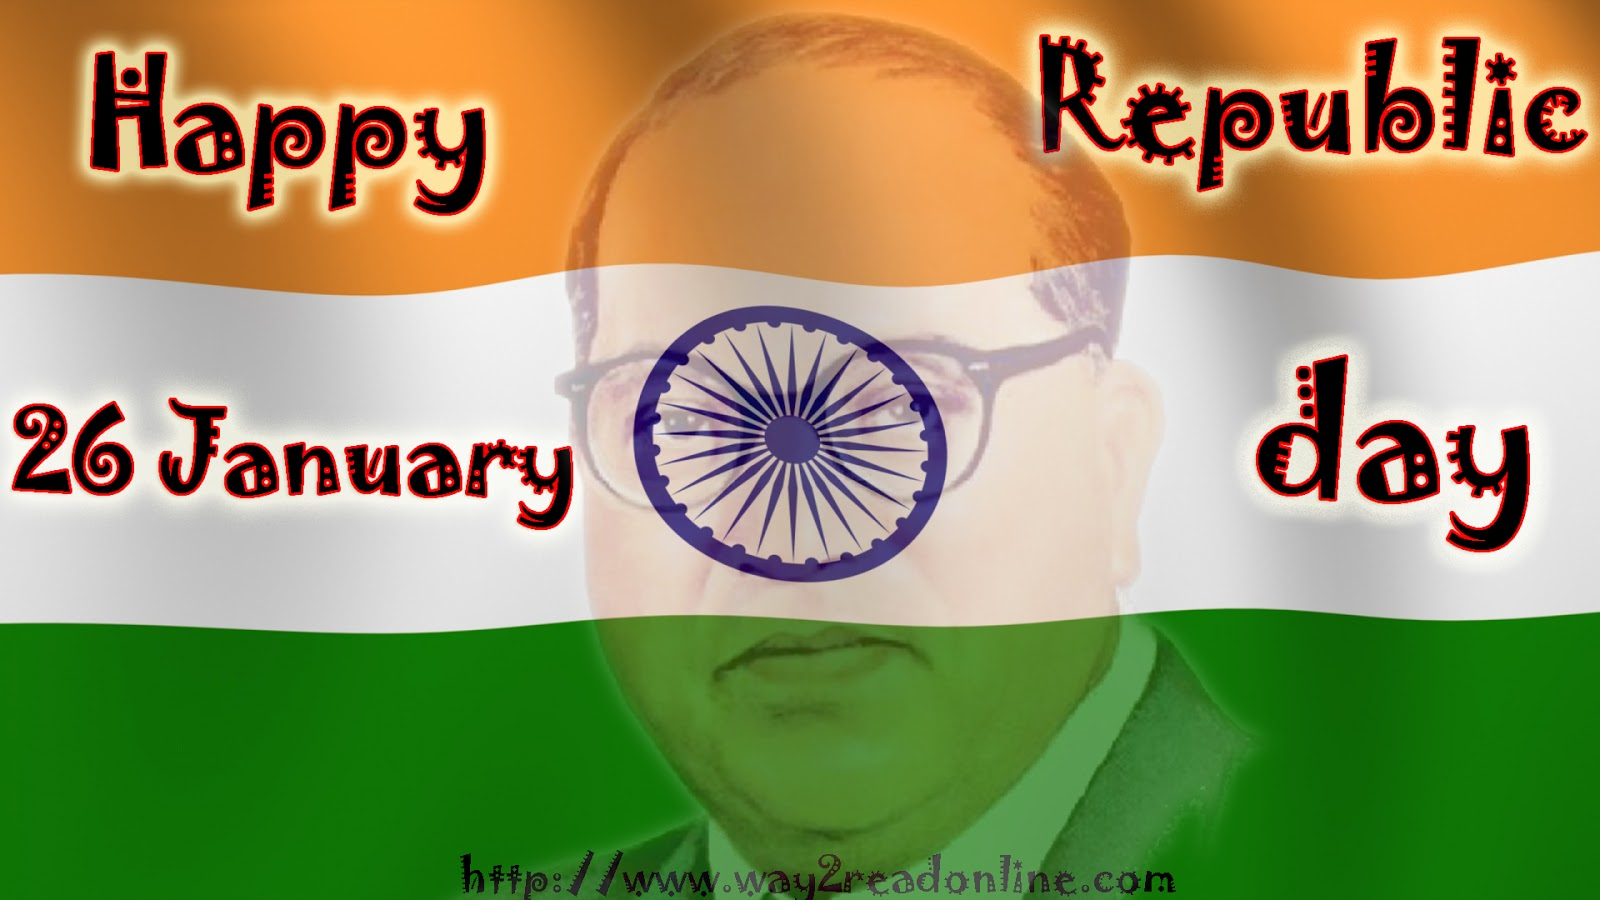 Calendars in addition Kannada Actress Siri additionally Cartoon Christmas Pictures Clip Art in addition New Call Of Duty Mega Bloks 2015 besides Wallpaper 26th January Republic Day. on oscar ballot 2016 printable one page